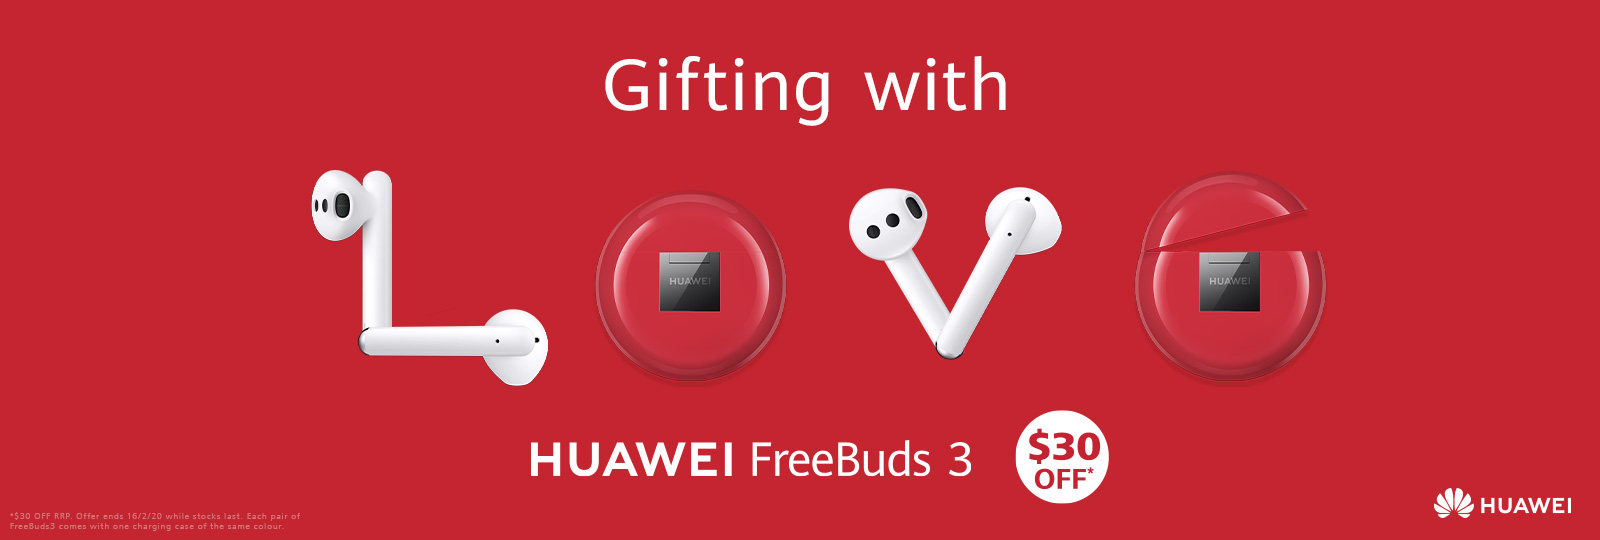 Huawei Freebuds 3 - Available Now